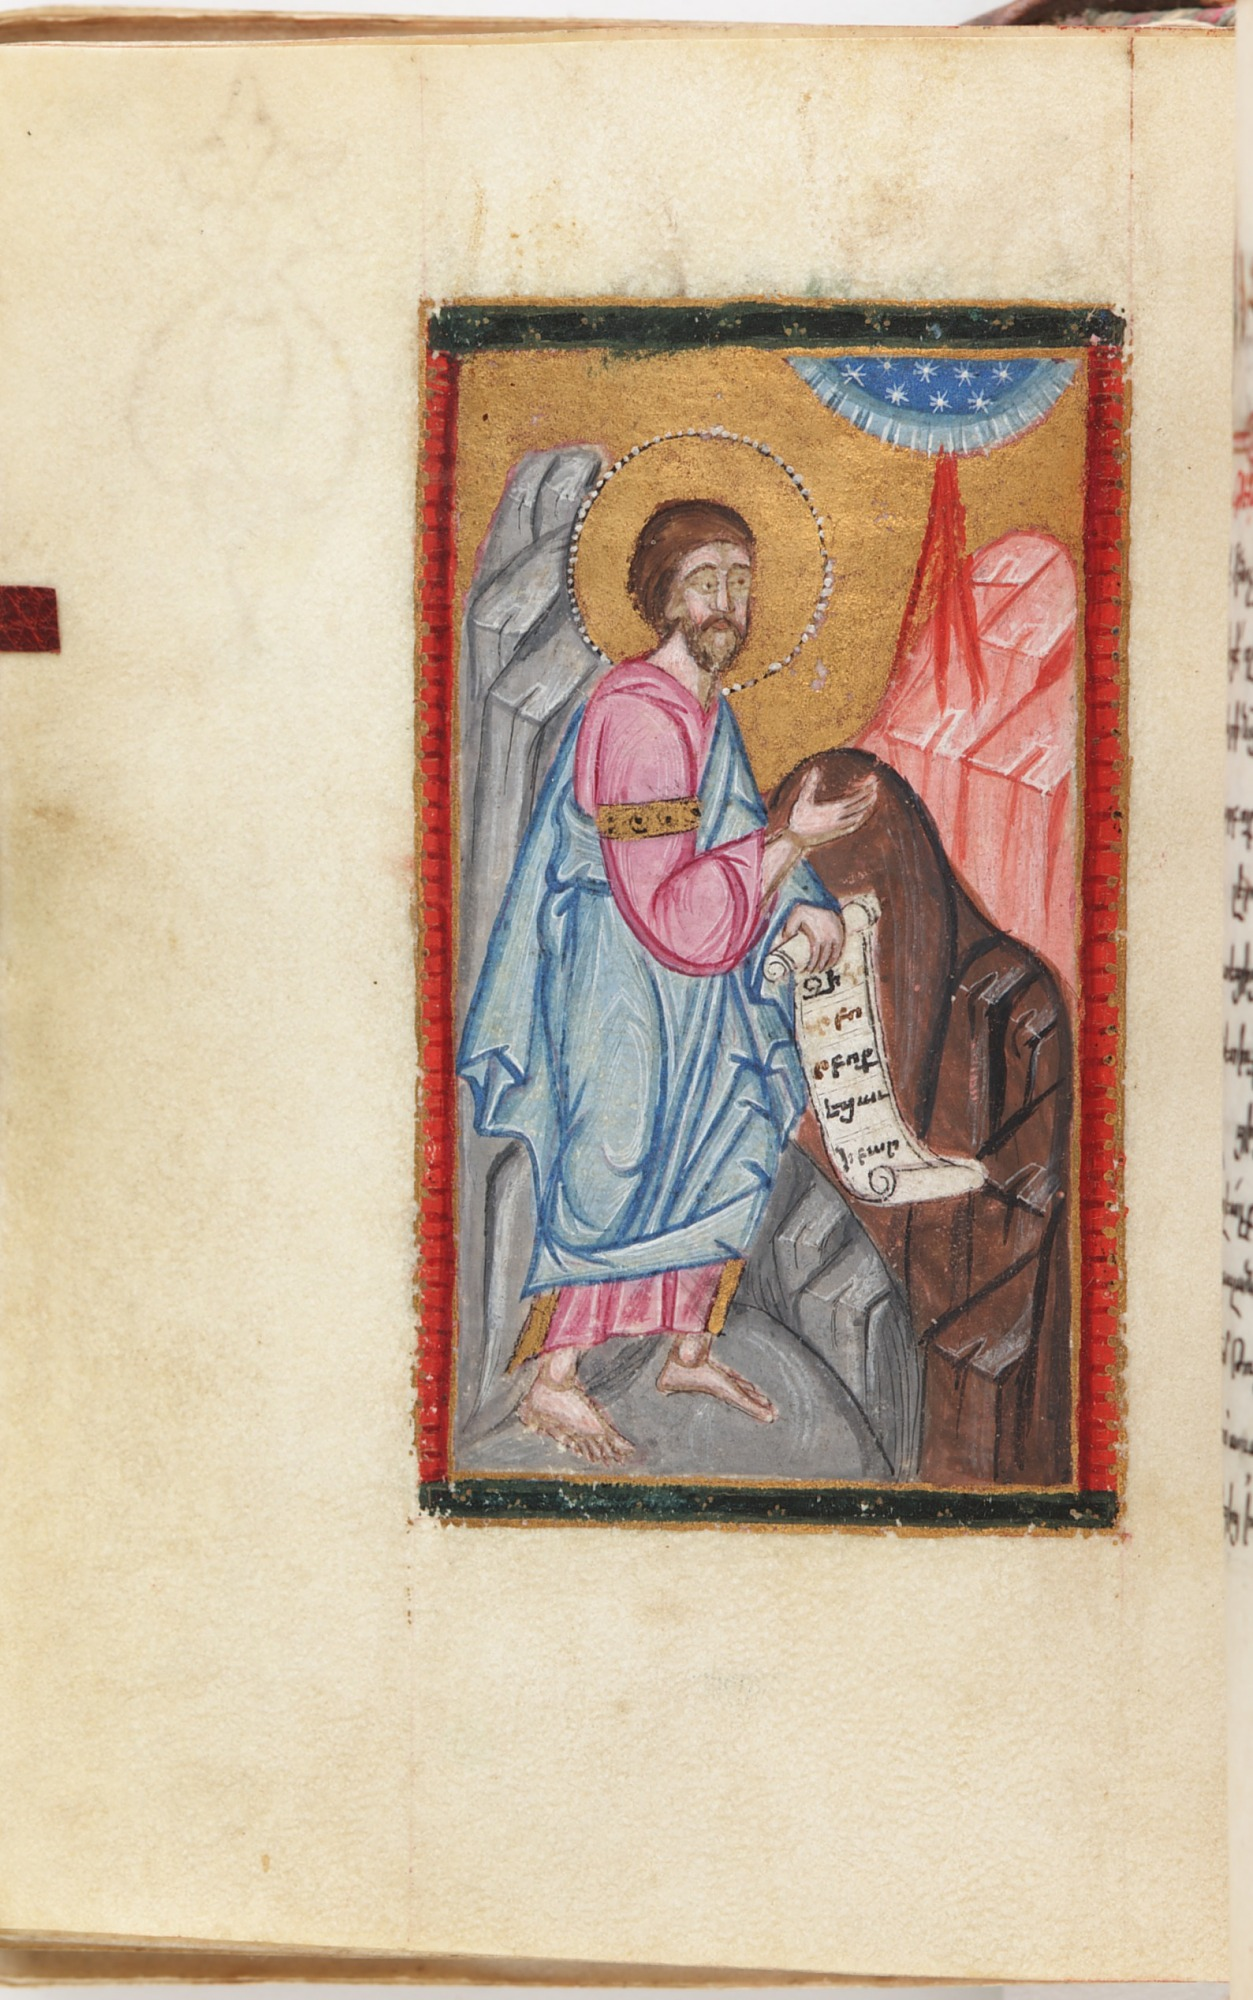 folio 102 verso: The Psalter of the orthodox Church